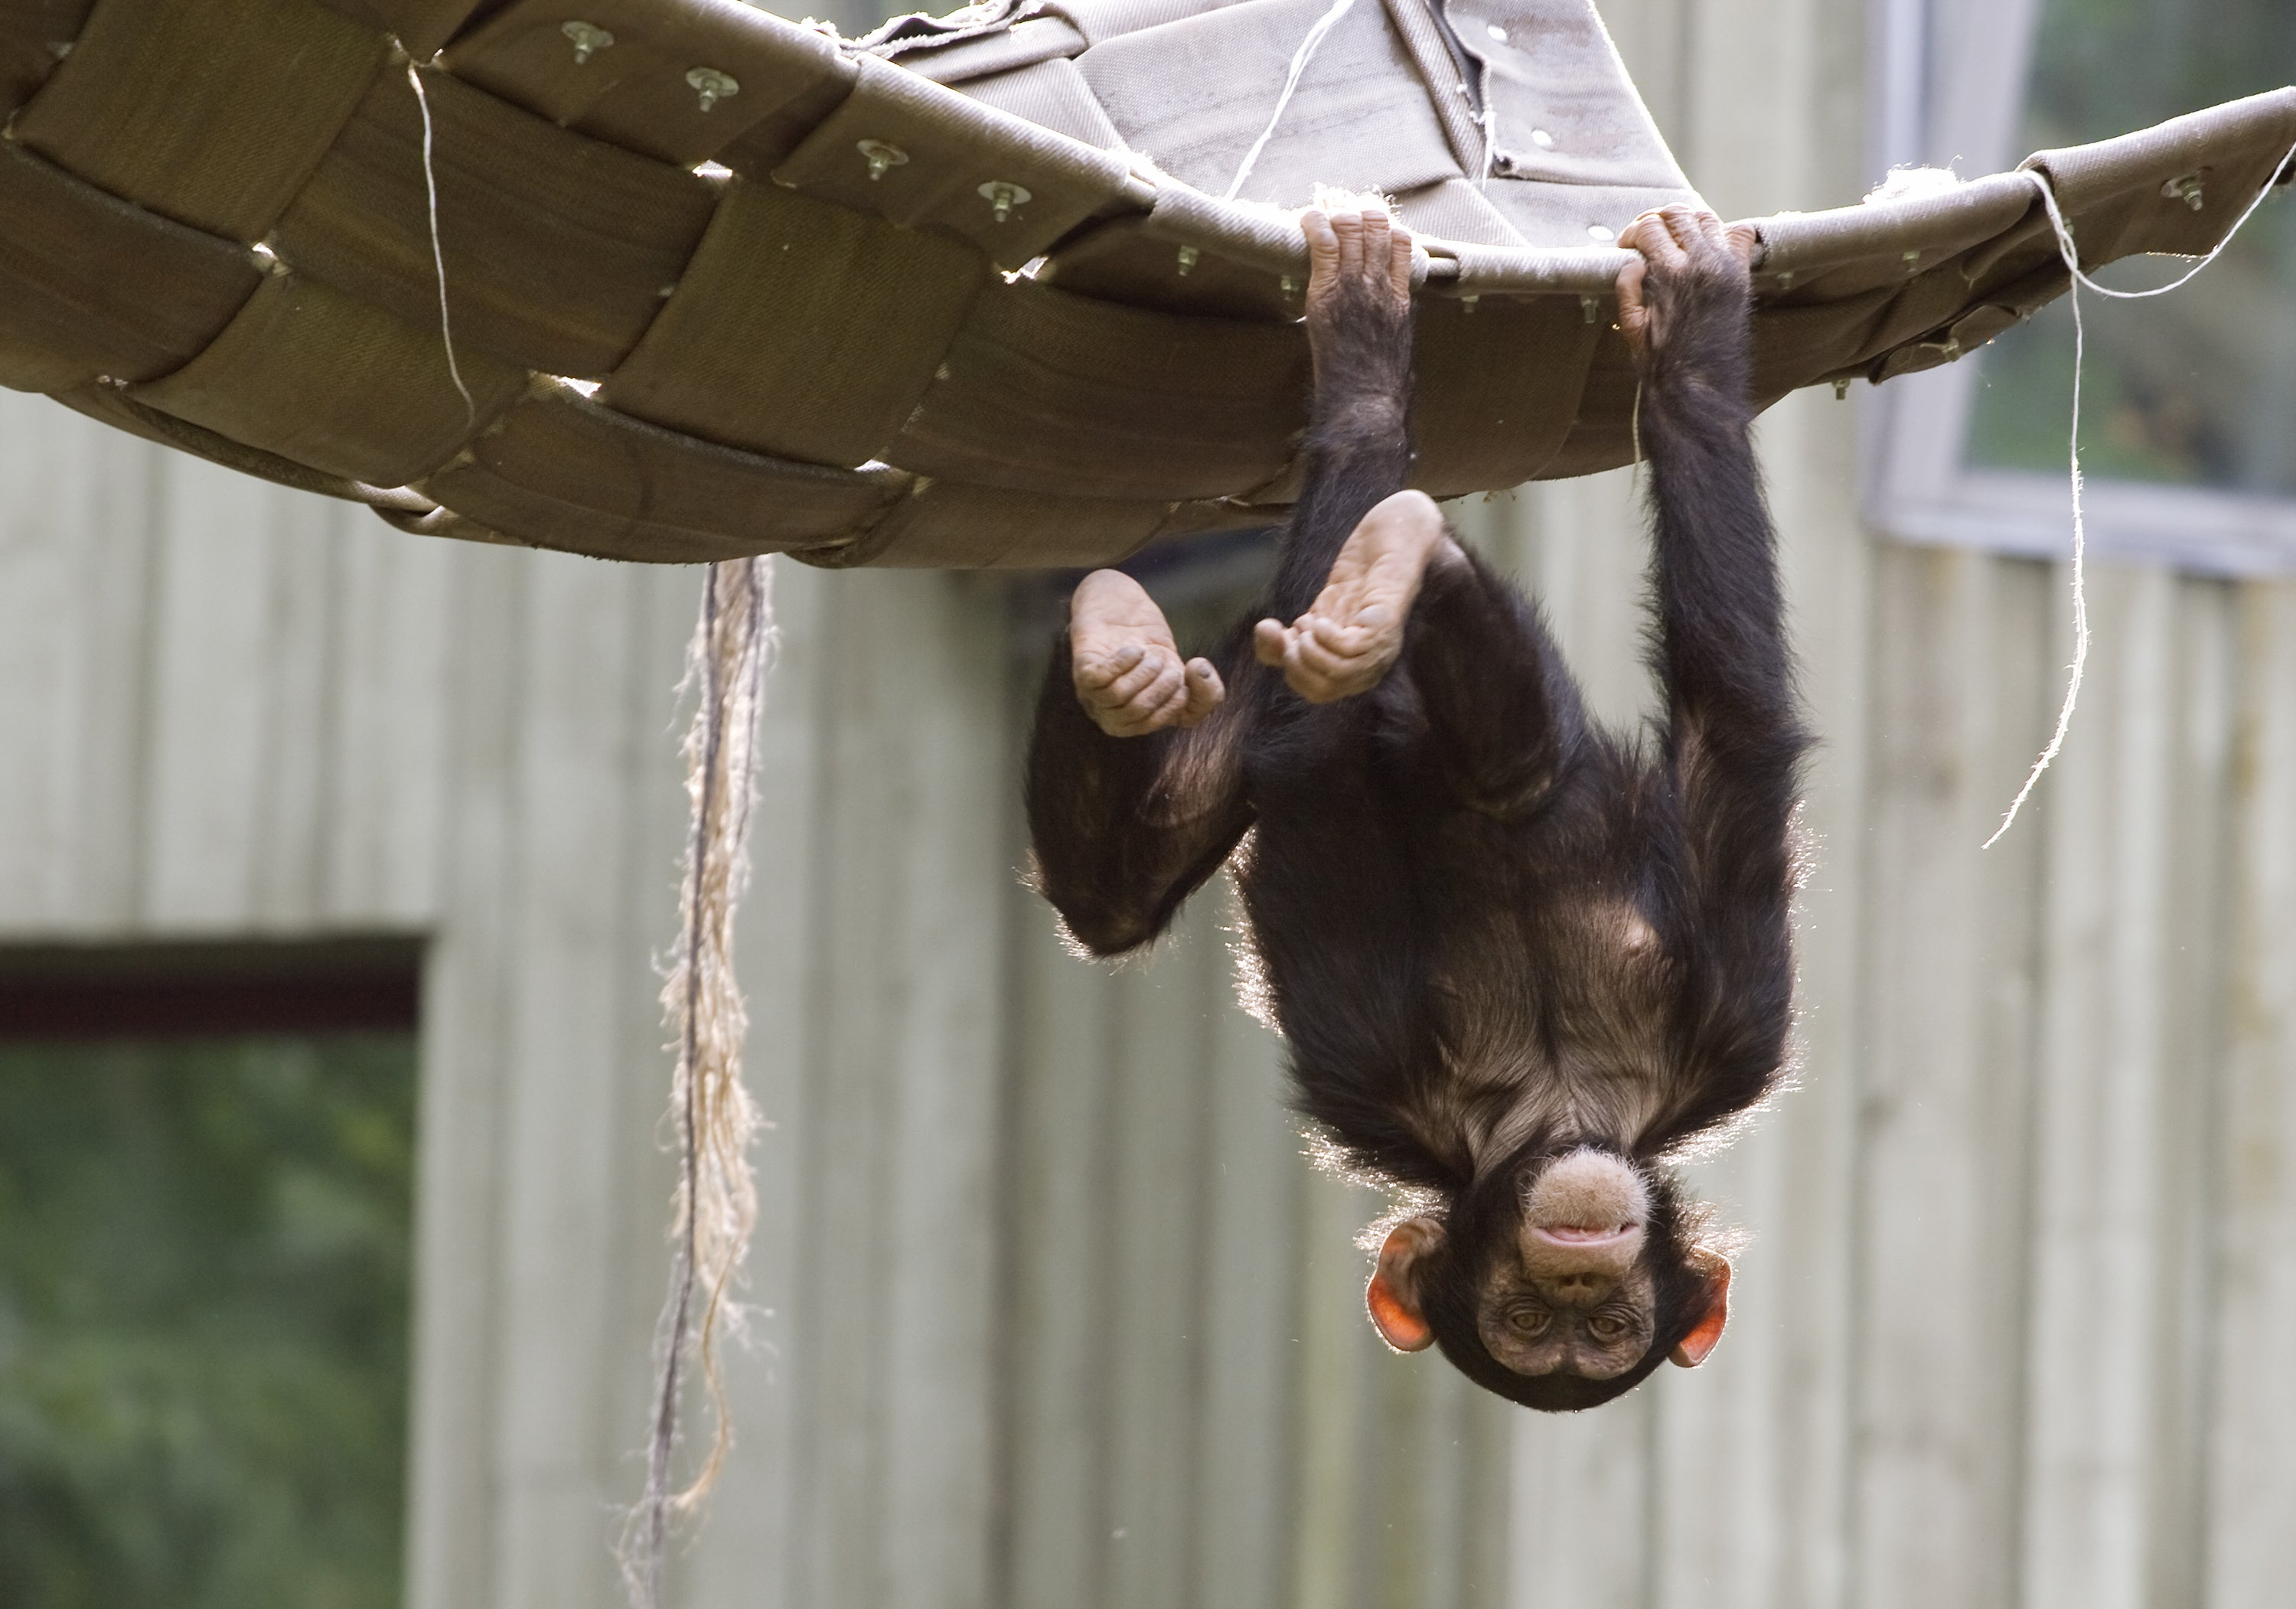 Baby chimpanzee playing and hanging upside-down